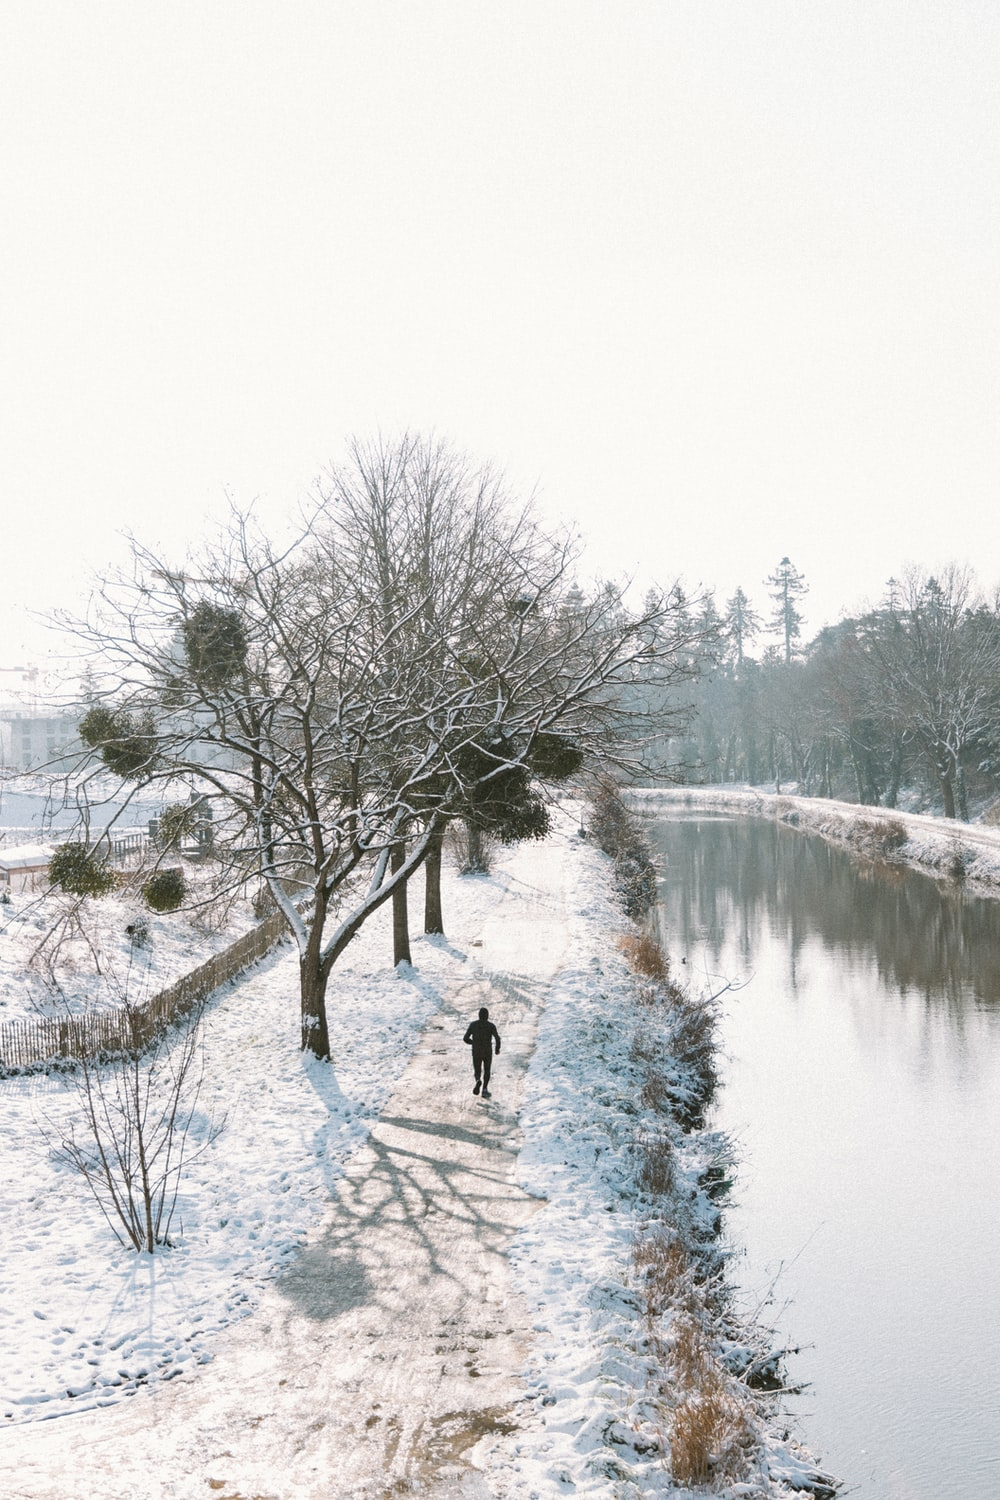 person in black jacket standing on snow covered ground near body of water during daytime